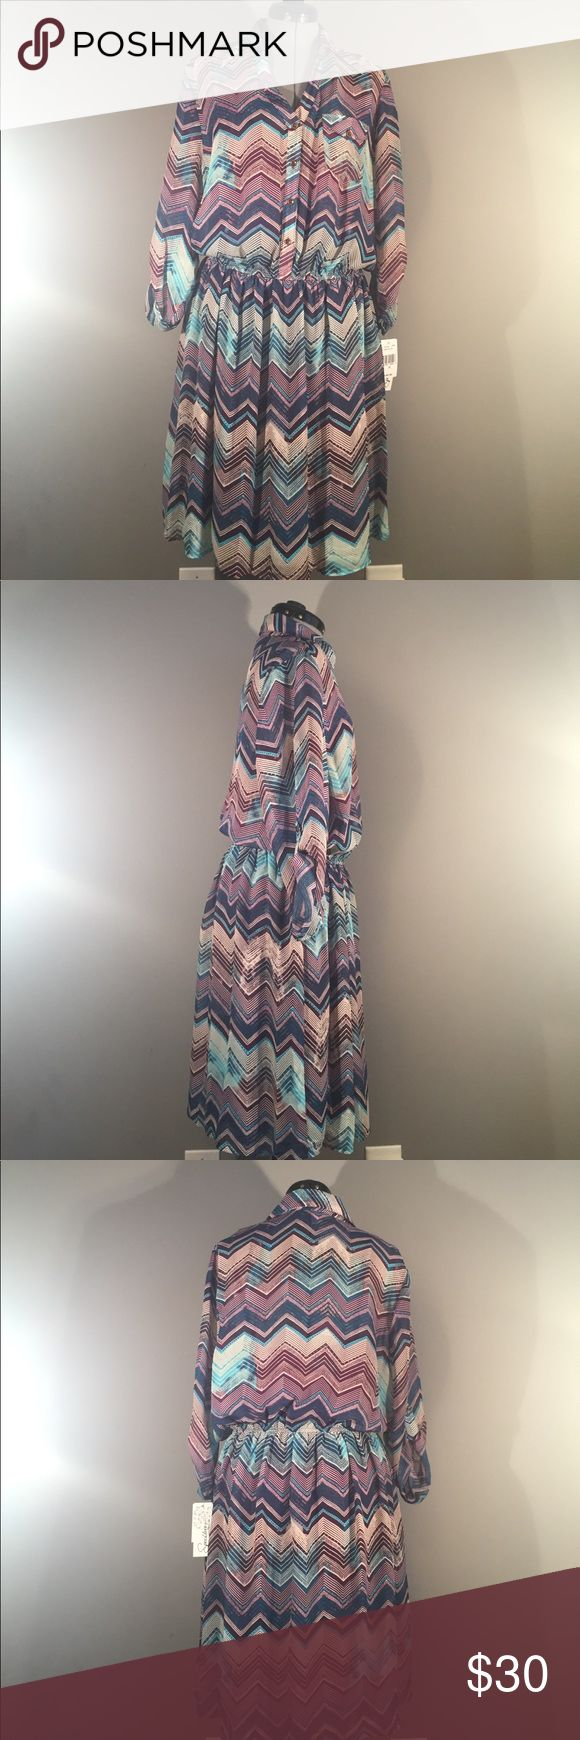 NWT! Speechless plus size chevron print dress - 1X NWT! Plus size, purple and teal chevron print, fully lined, 3/4 sleeve, button front dress by Speechless. Perfect condition. Size 1X Speechless Dresses